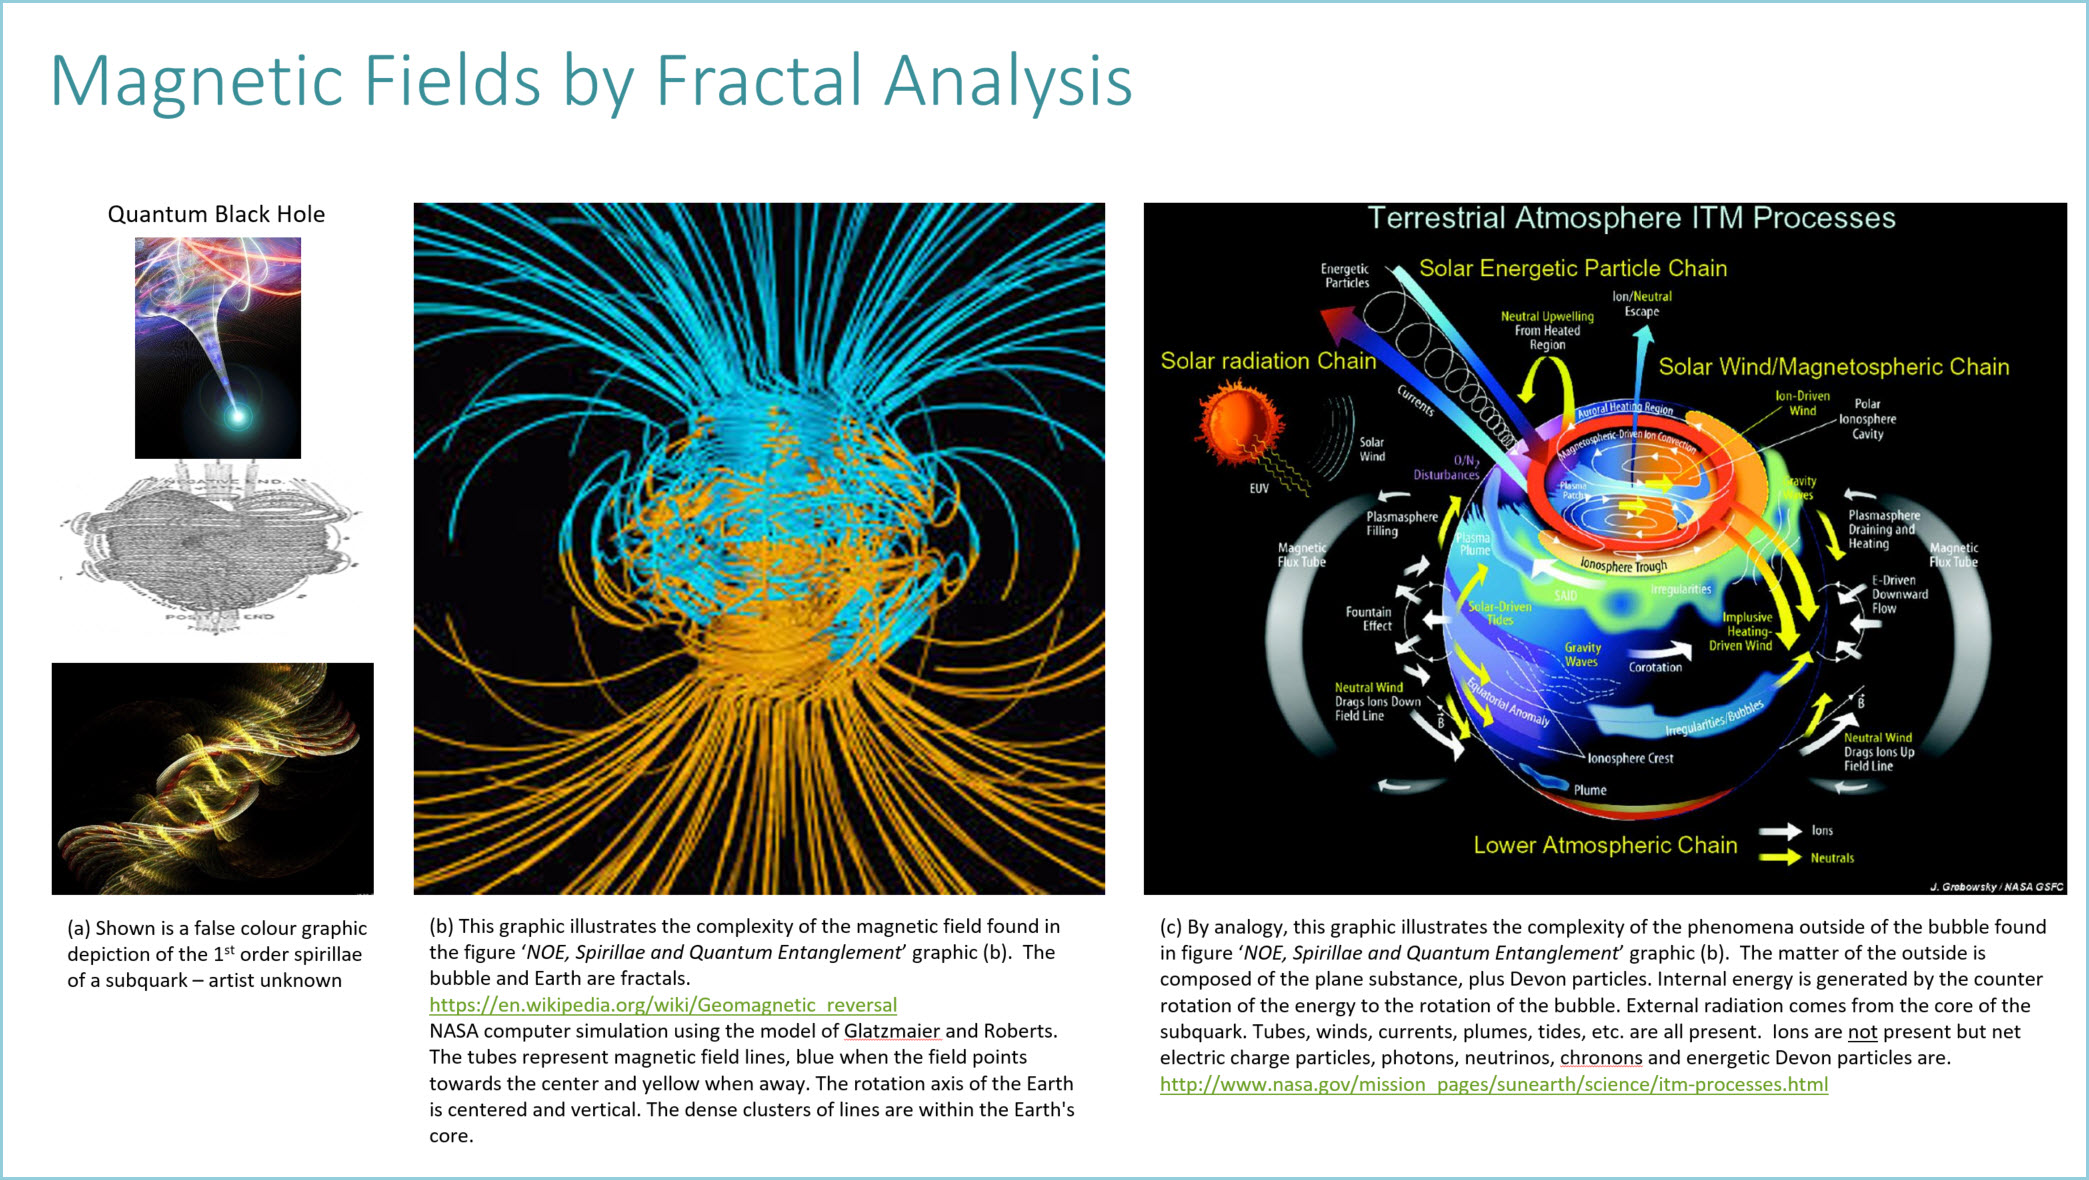 Magnetic Fields by Fractal Analysis